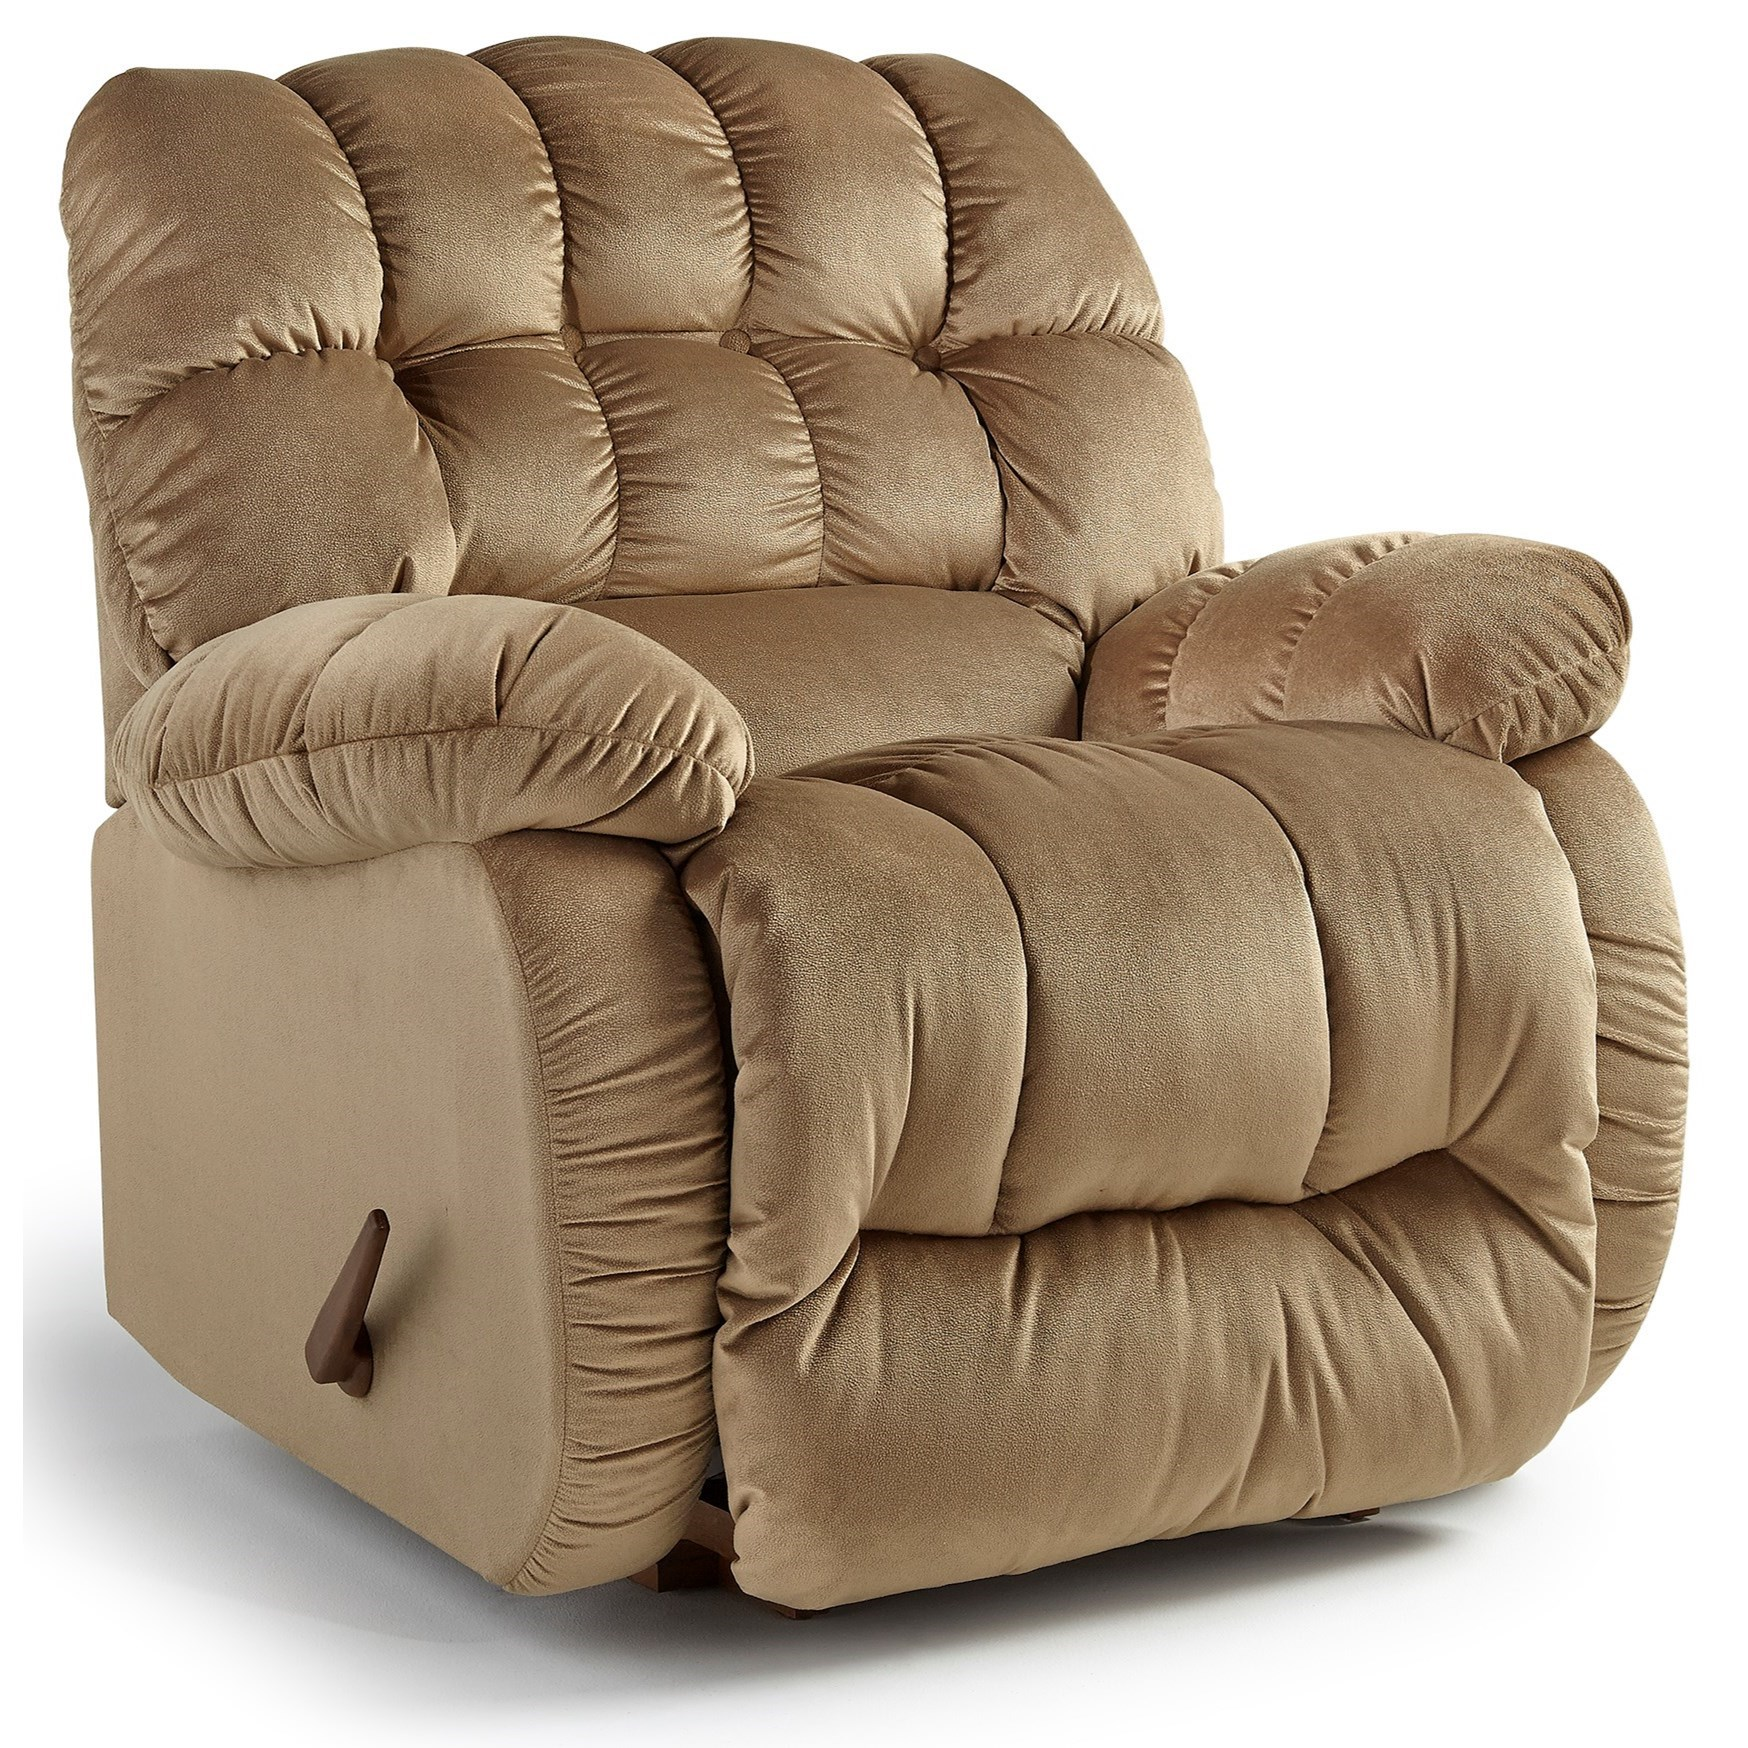 best home furnishings the beast roscoe beast lift recliner wayside furniture lift chairs. Black Bedroom Furniture Sets. Home Design Ideas